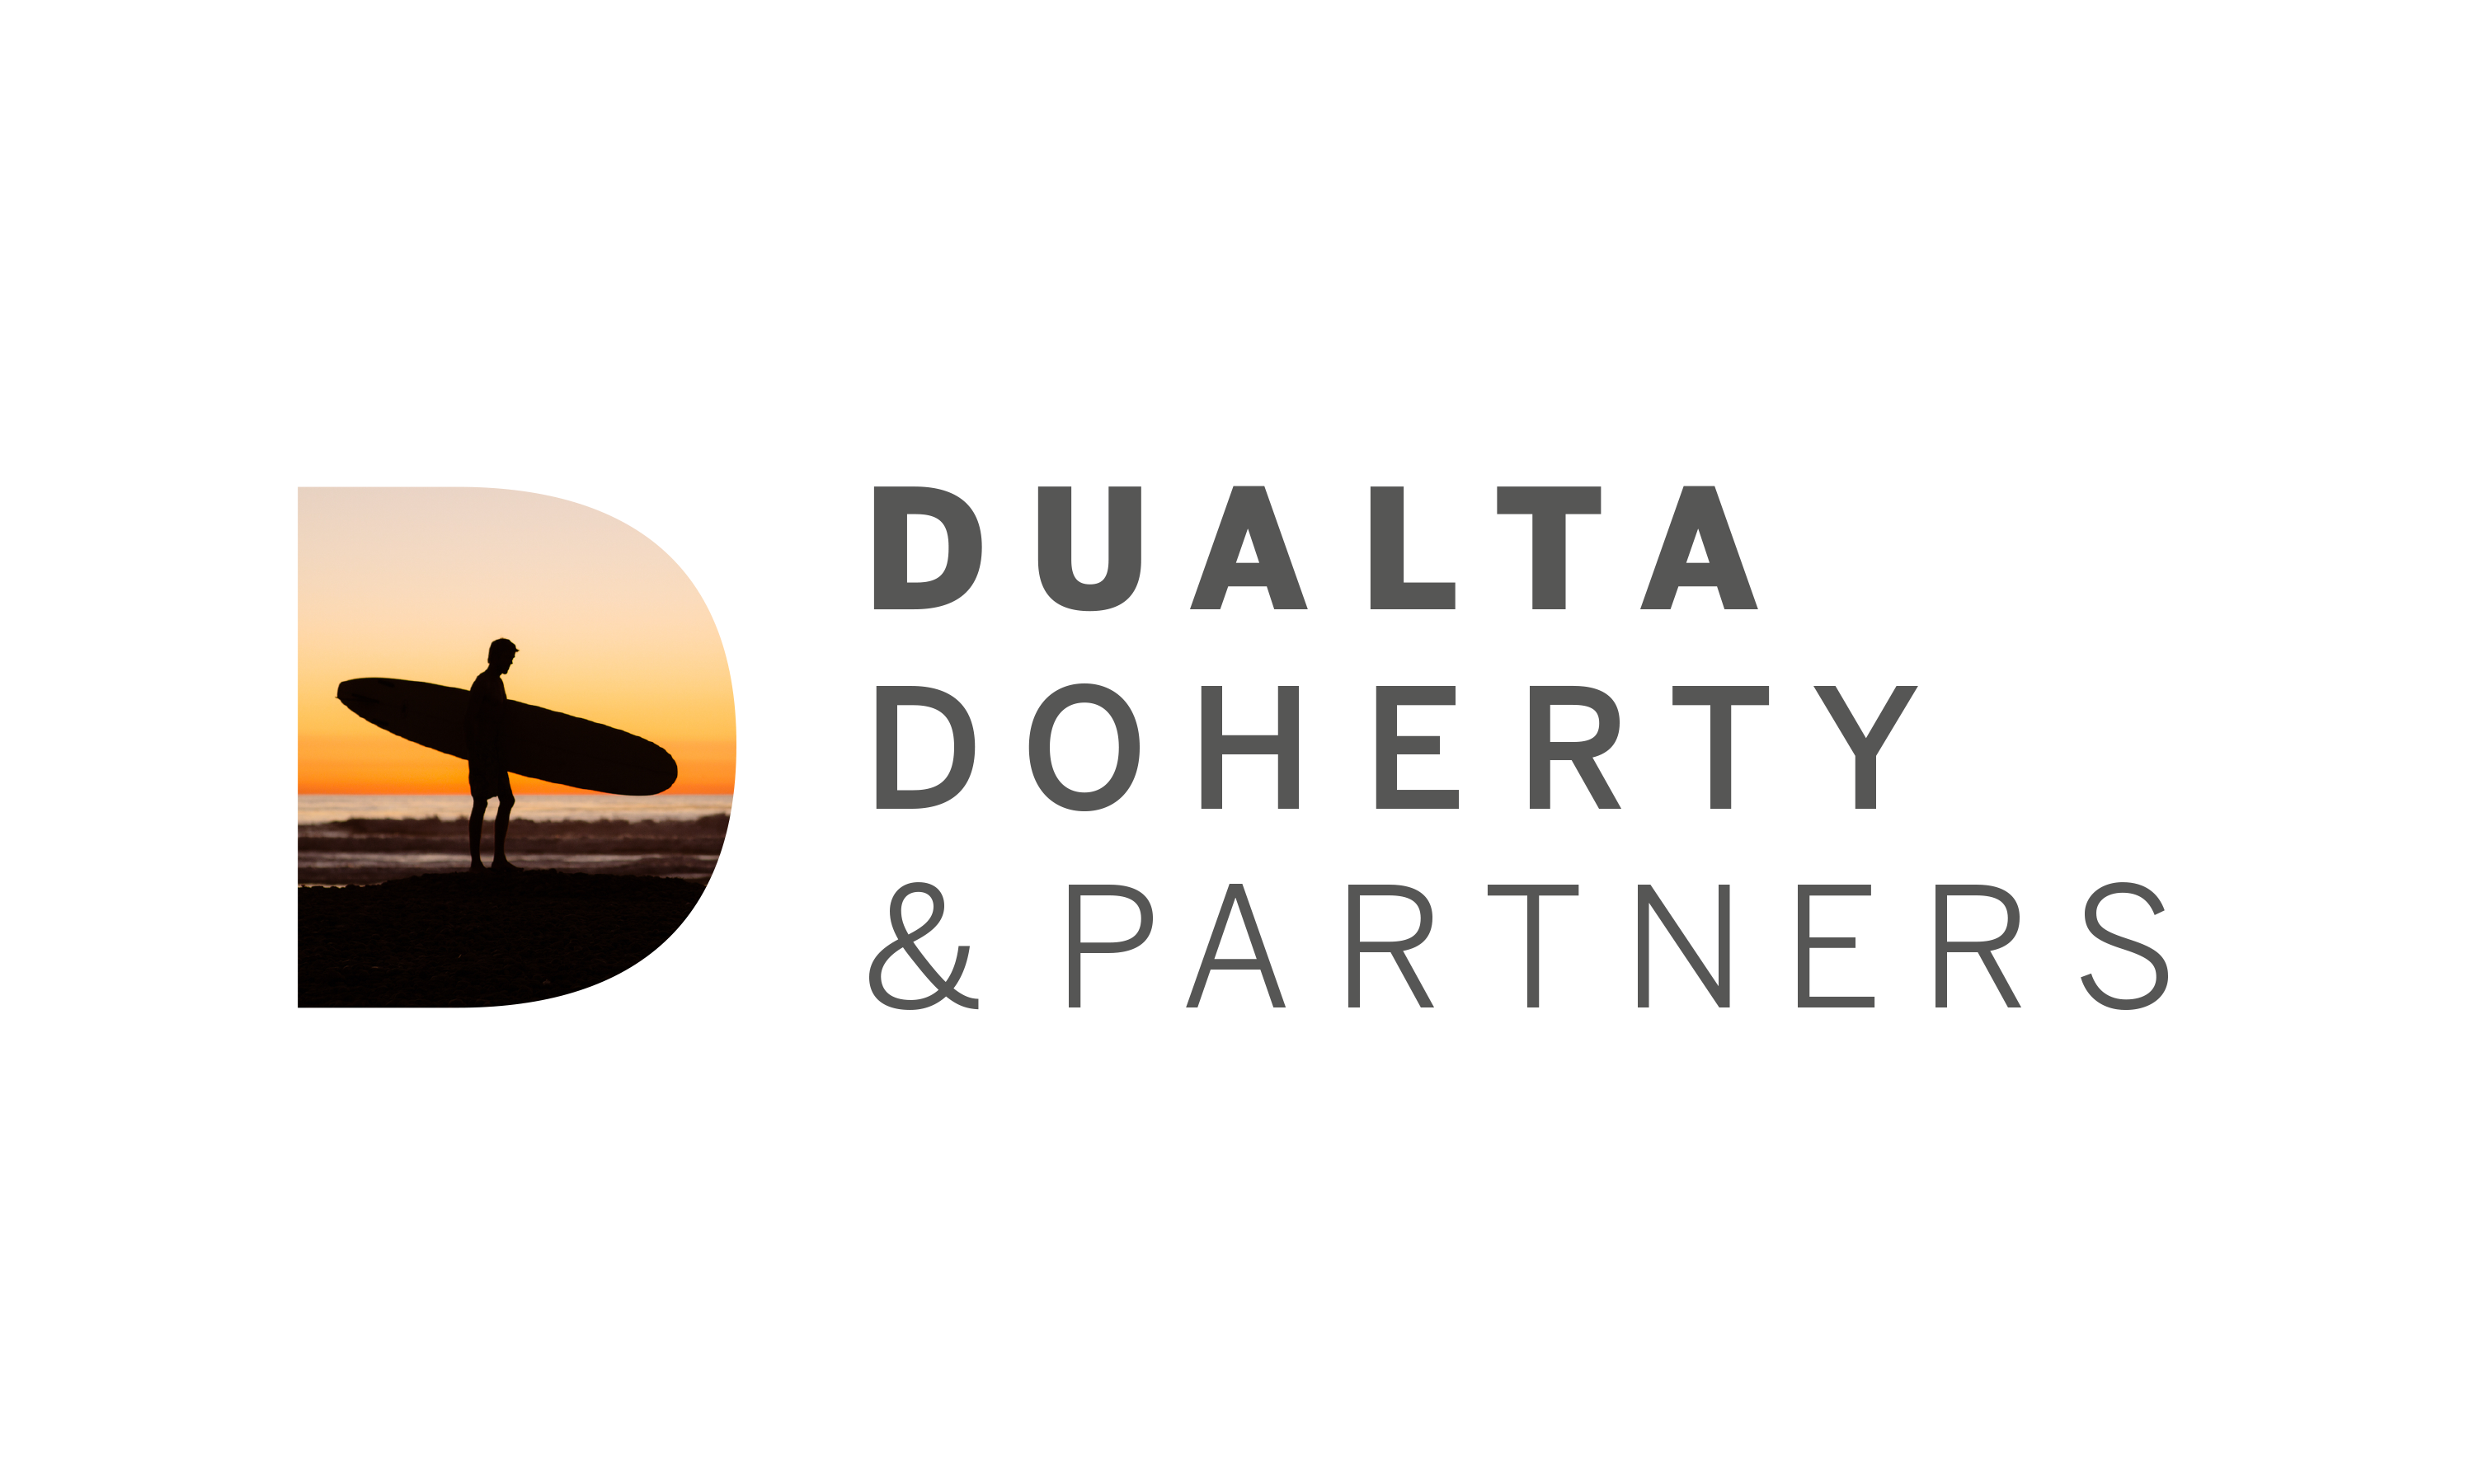 Dualta-Doherty-and-Partners branding by Neon brand consultancy